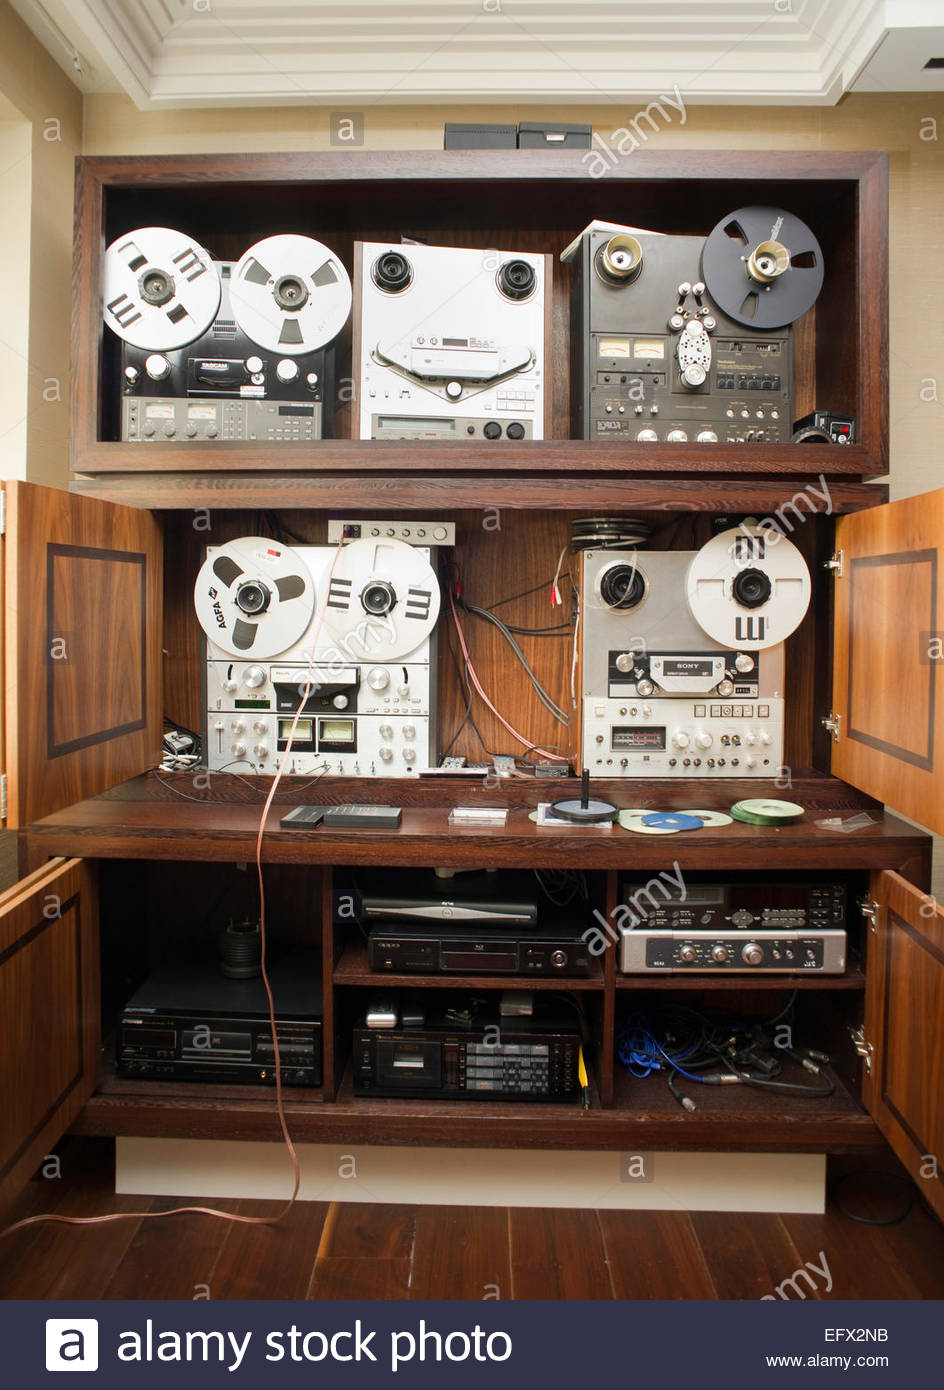 Tape Recorder Indoors Stock Photos Room Reel To Deck Player United Kingdom Great Britain British Uk Central